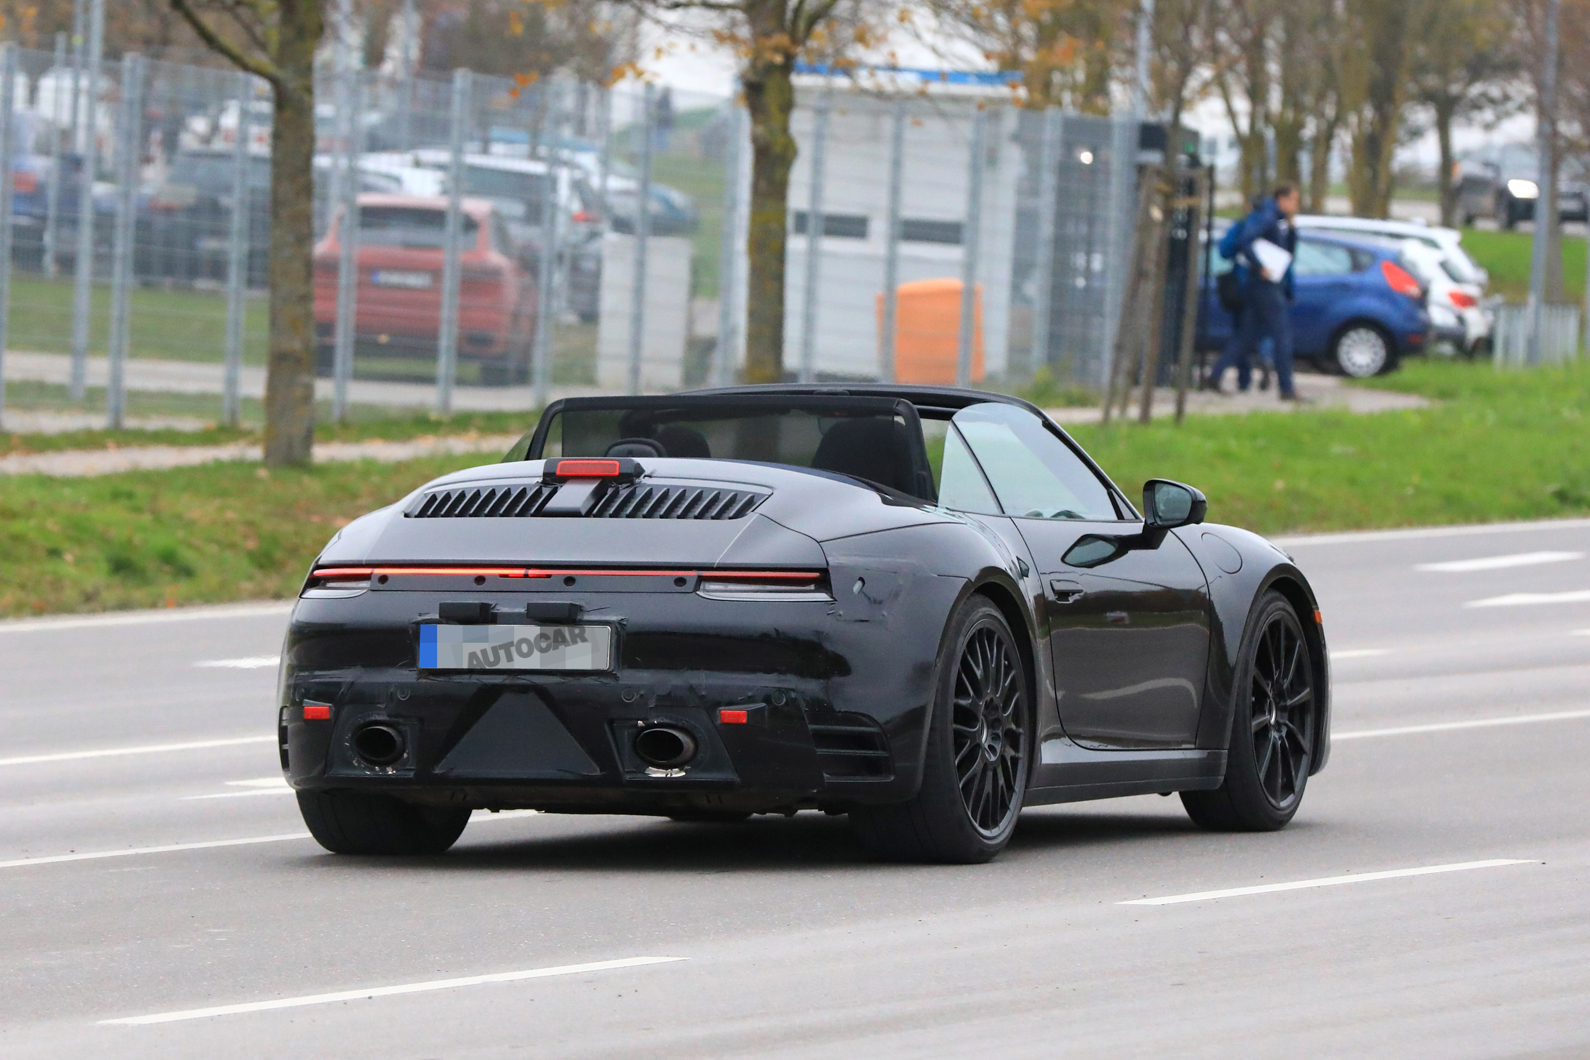 2019 Porsche 911 New Pics Of 630bhp Turbo S